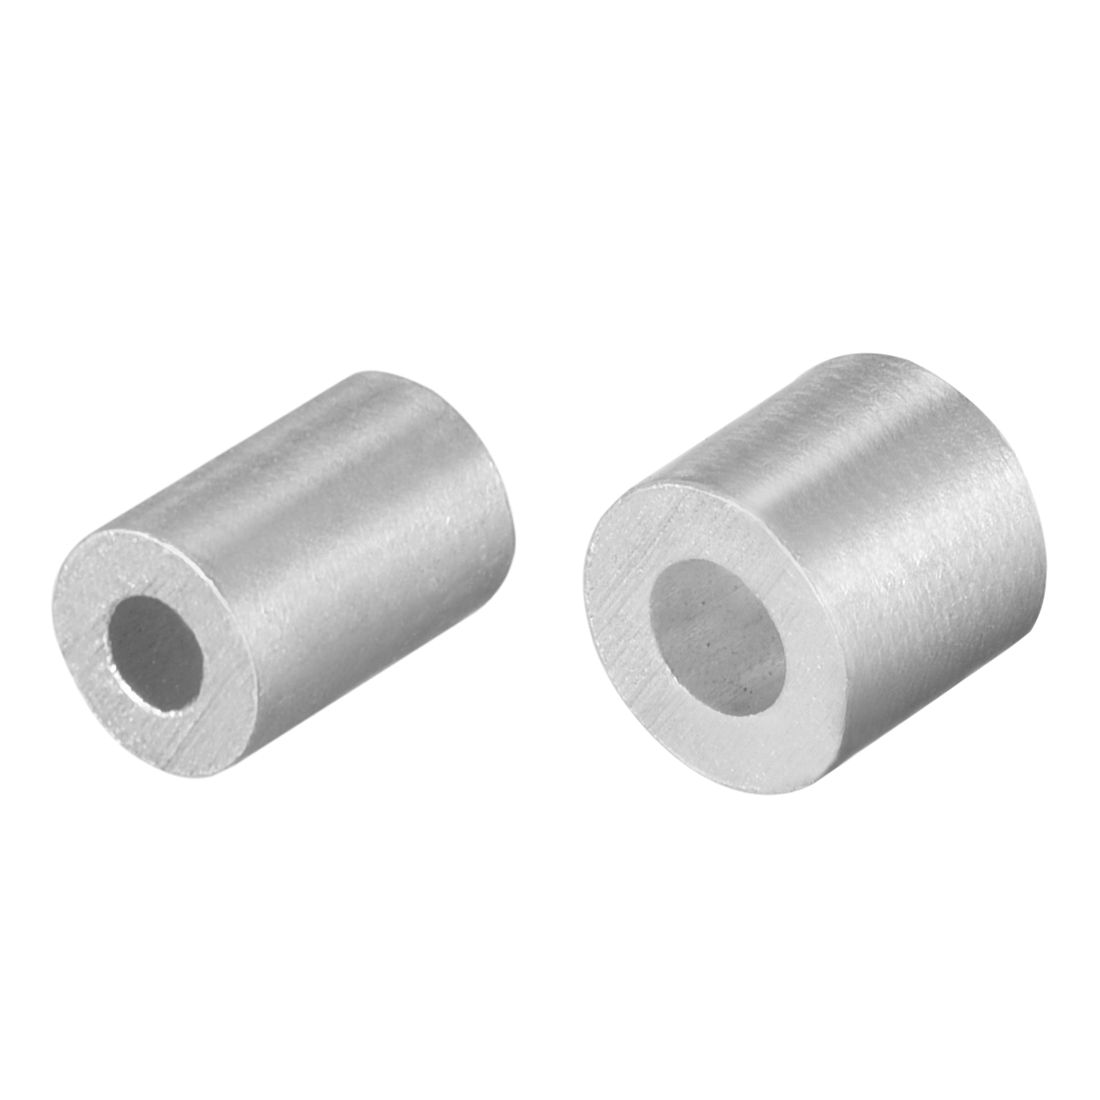 Uxcell 5/10/20/25/30/50/100psc Cable Wire Rope Aluminum Sleeves Clip Crimping Loop Silver Tone With Round Hole